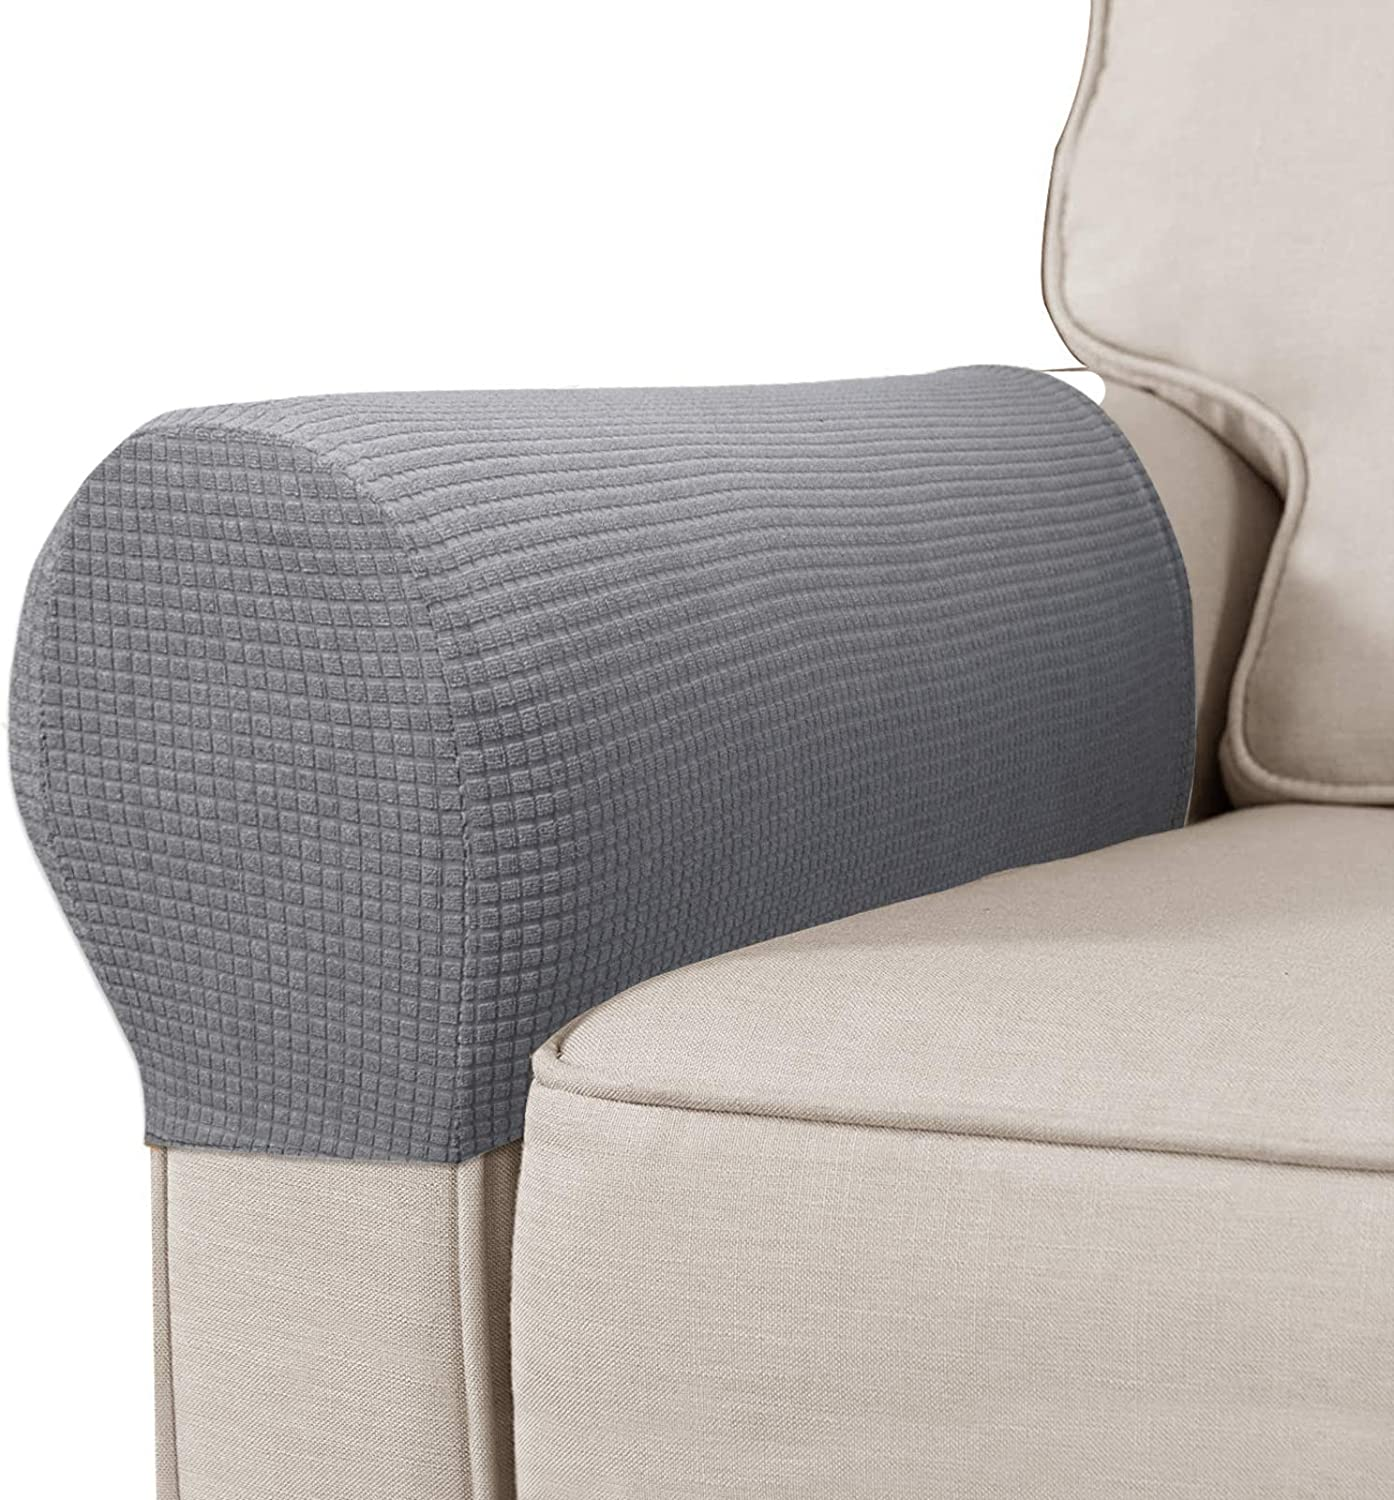 High Stretch Polyester Sofa Armchair Armrest Covers Slipcovers Waterproof Furniture Protector Spandex Fabric Anti-Stain Washable Couch Arm Cover Slipcover, Set of 2 (Light Gray)